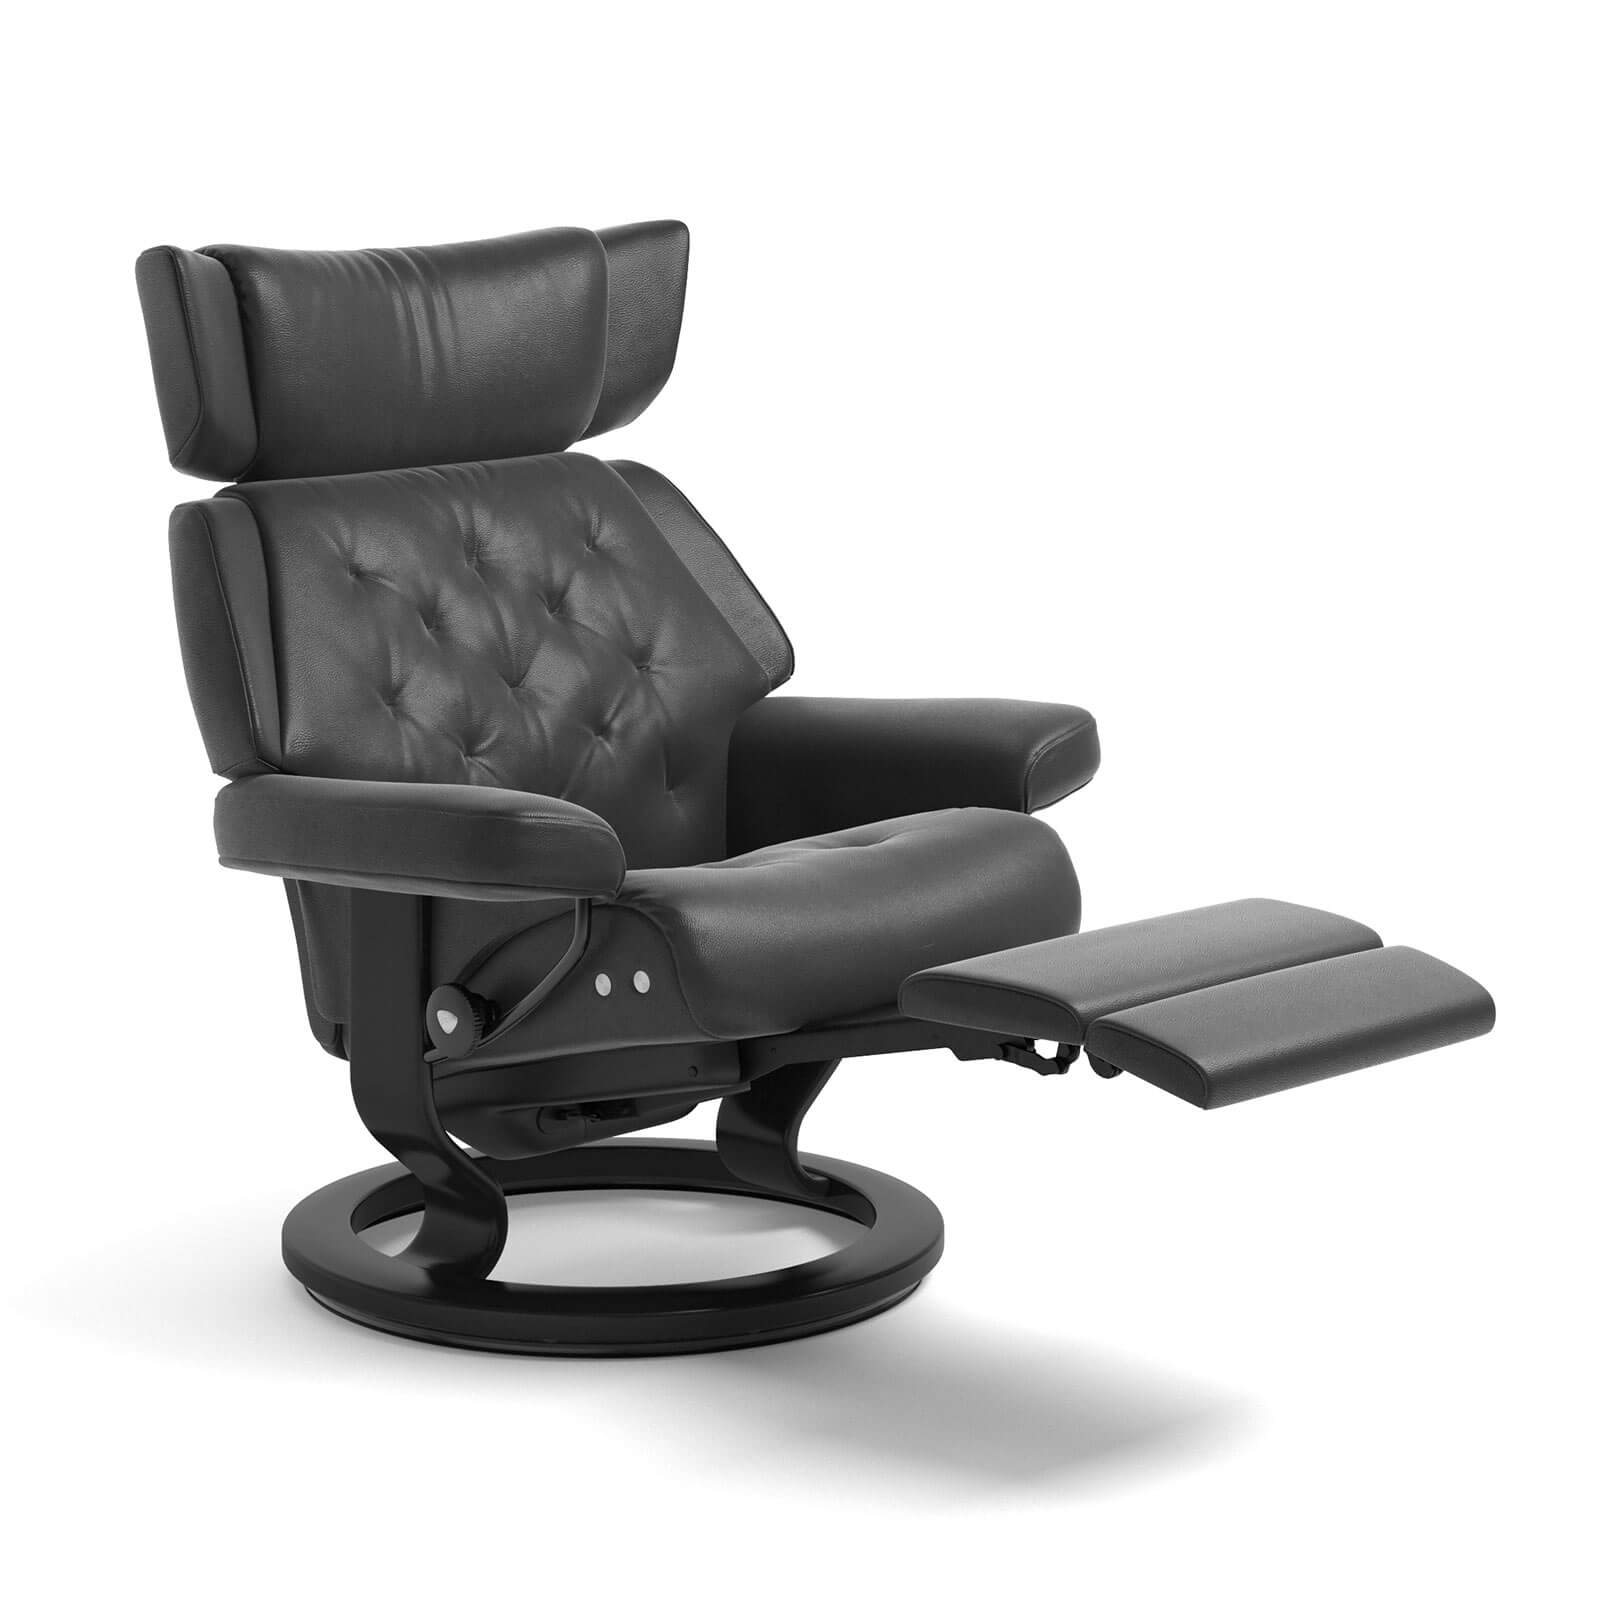 stressless sessel skyline legcomfort cori schwarz stressless. Black Bedroom Furniture Sets. Home Design Ideas